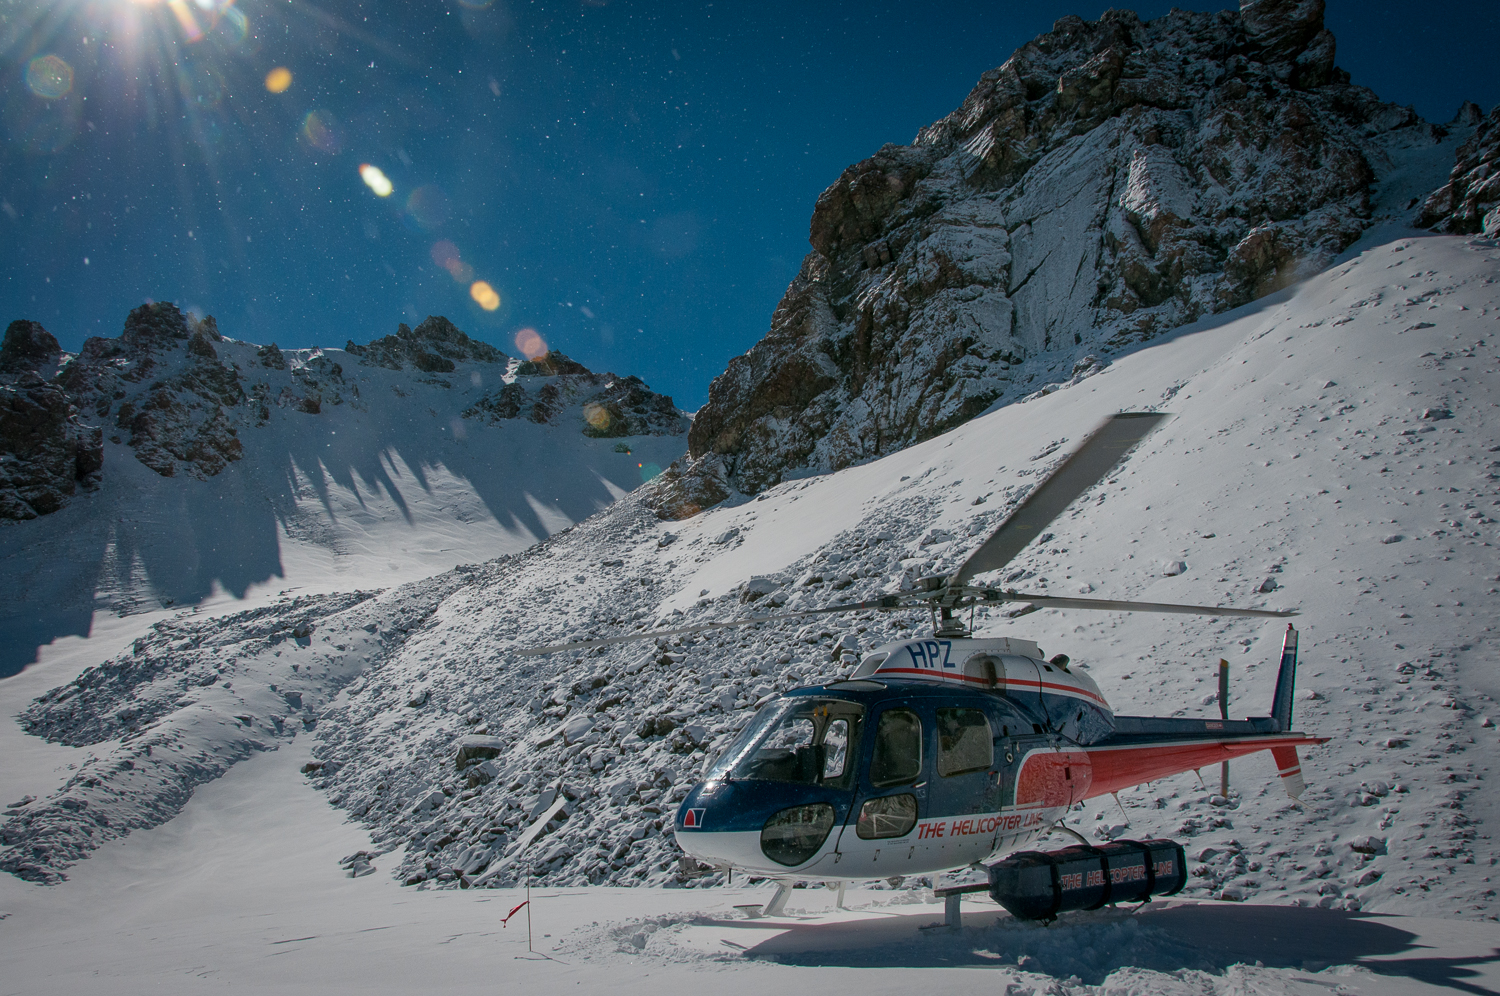 Helicopter on the Snow